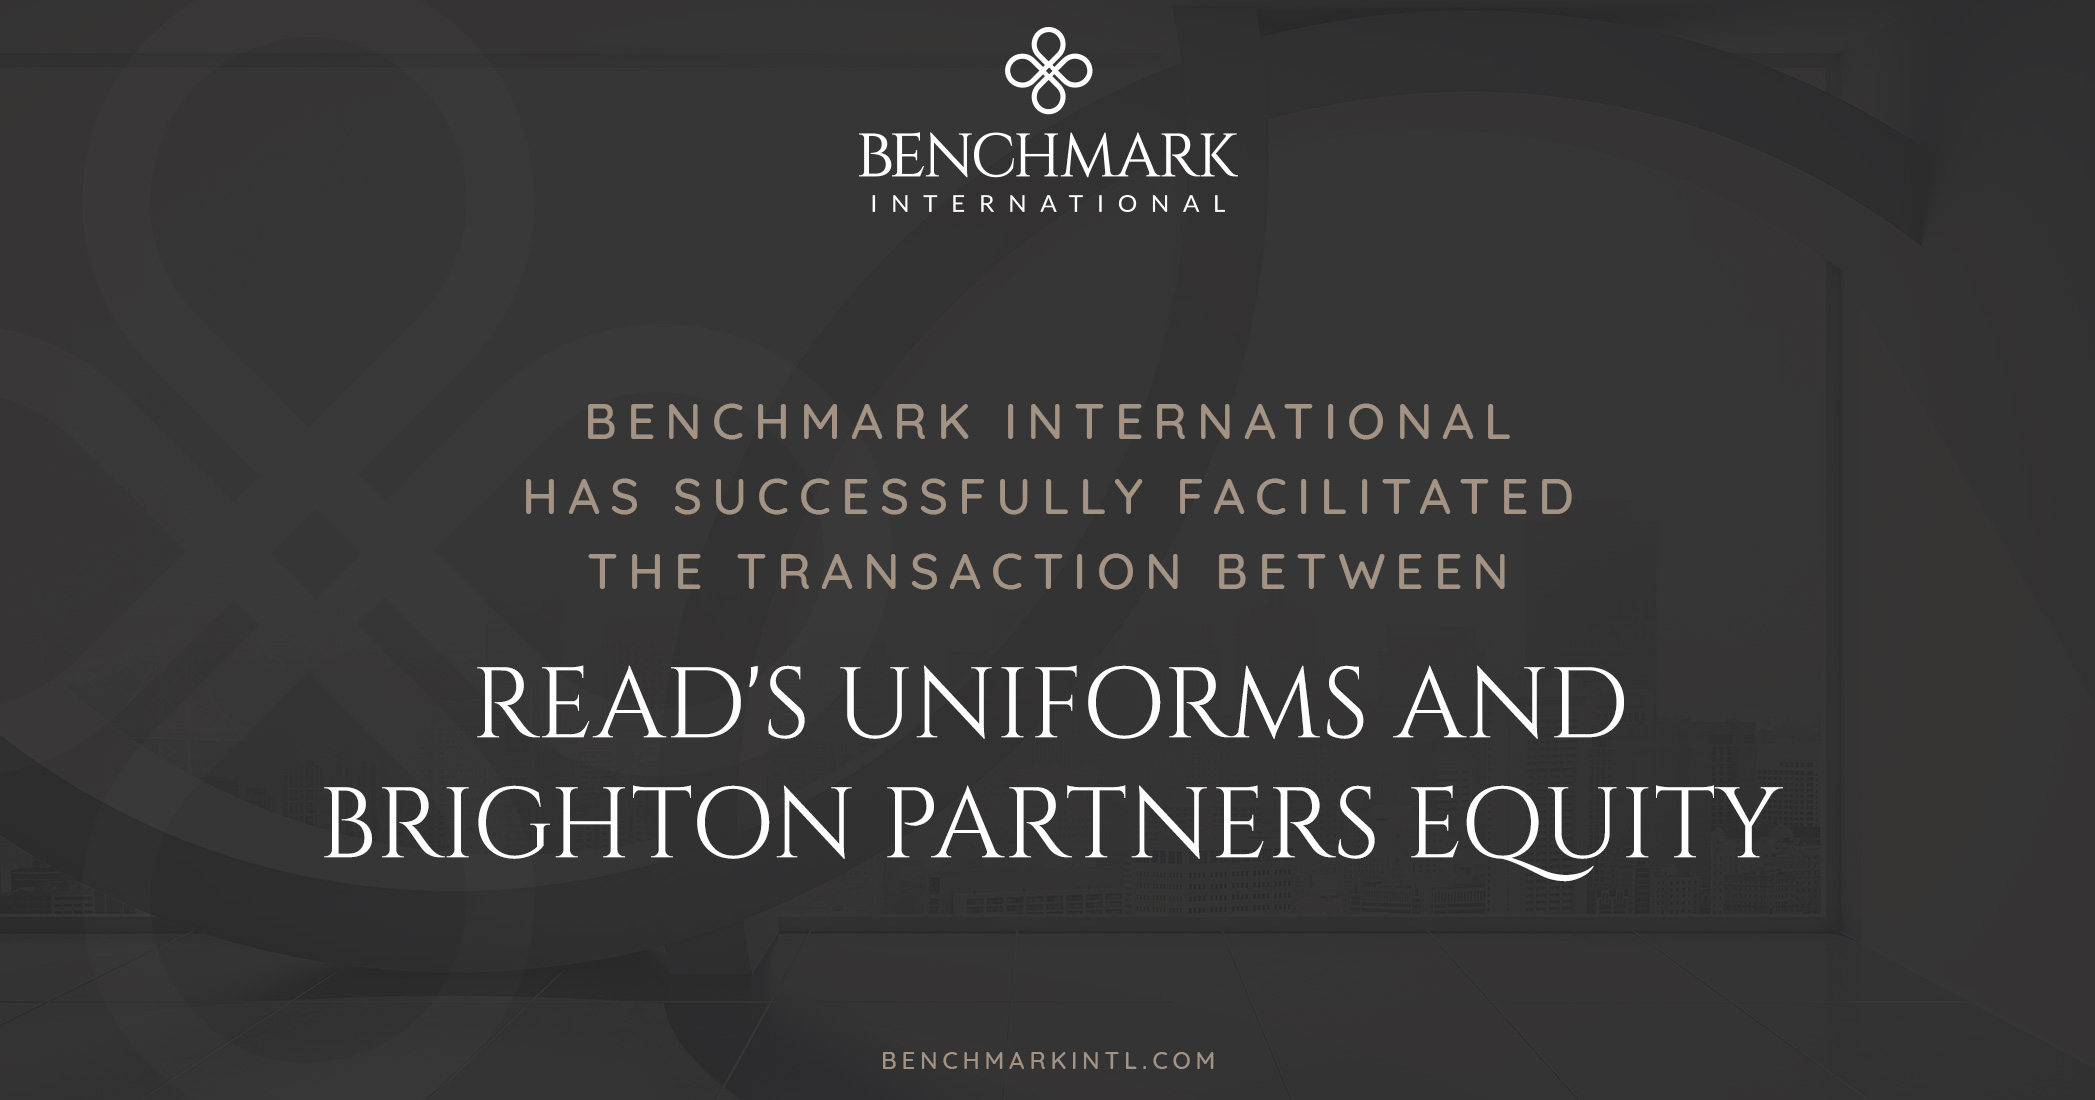 Benchmark International Successfully Facilitated the Transaction Between Read's Uniforms and Brighton Partners Equity